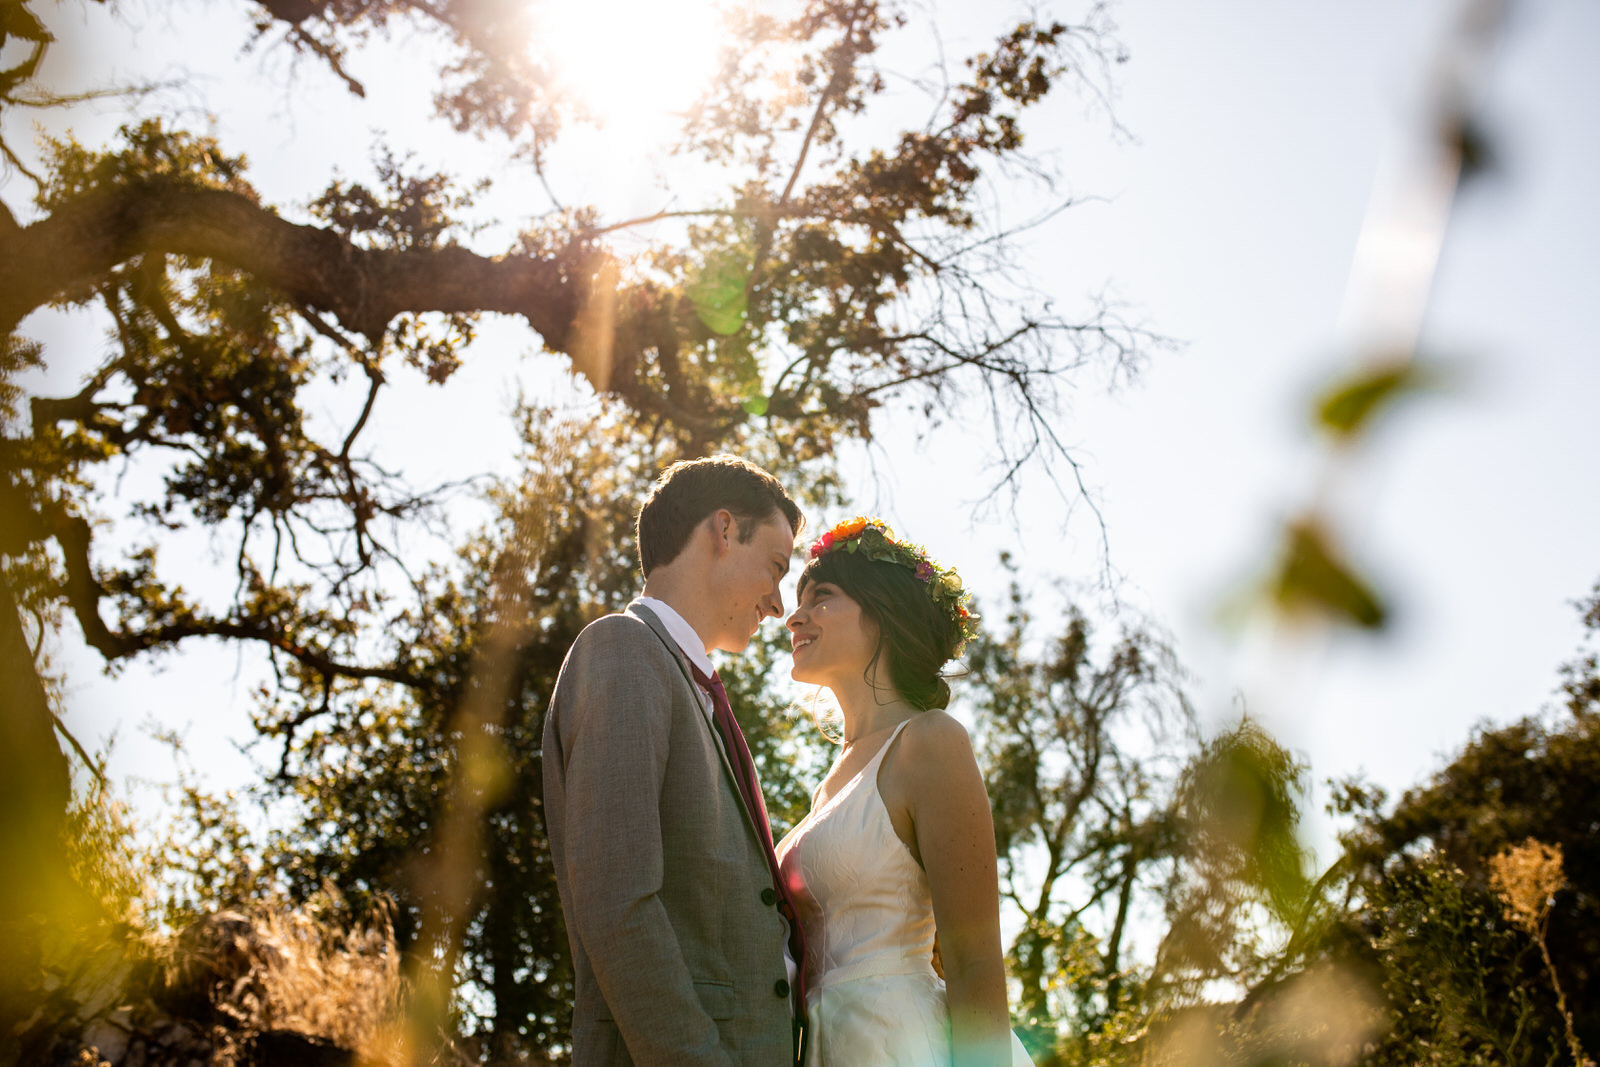 Bride and groom looking into each others eyes in front of a oak tree